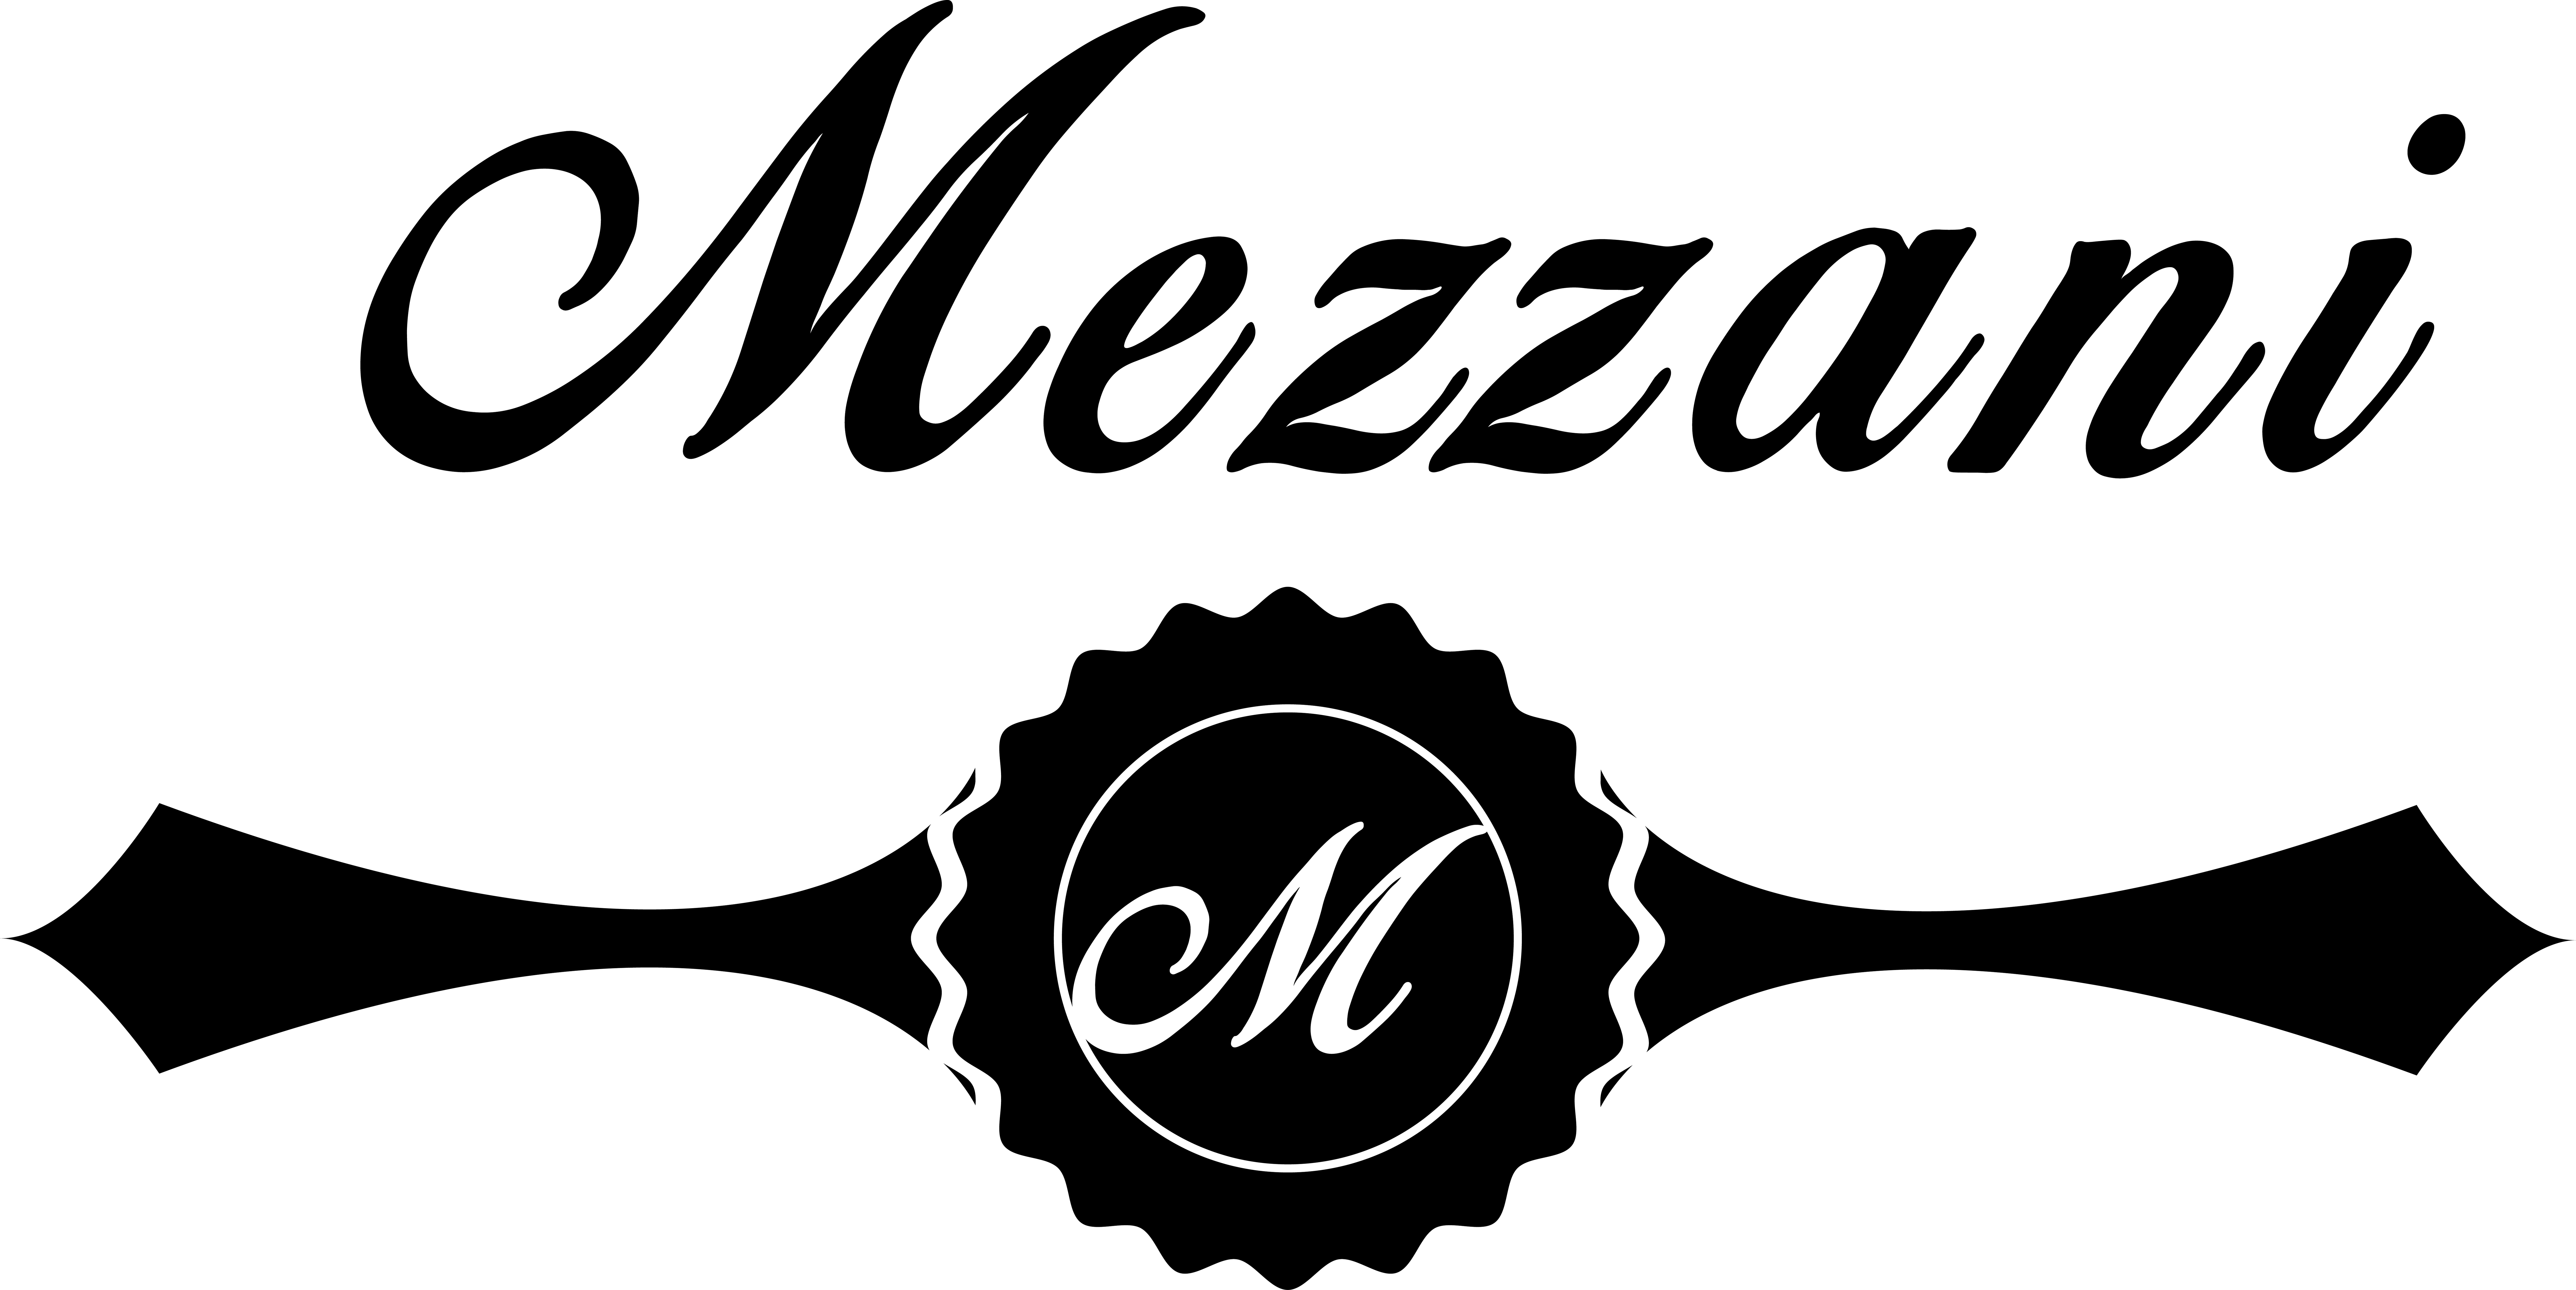 Copy of Mezzani_black_version